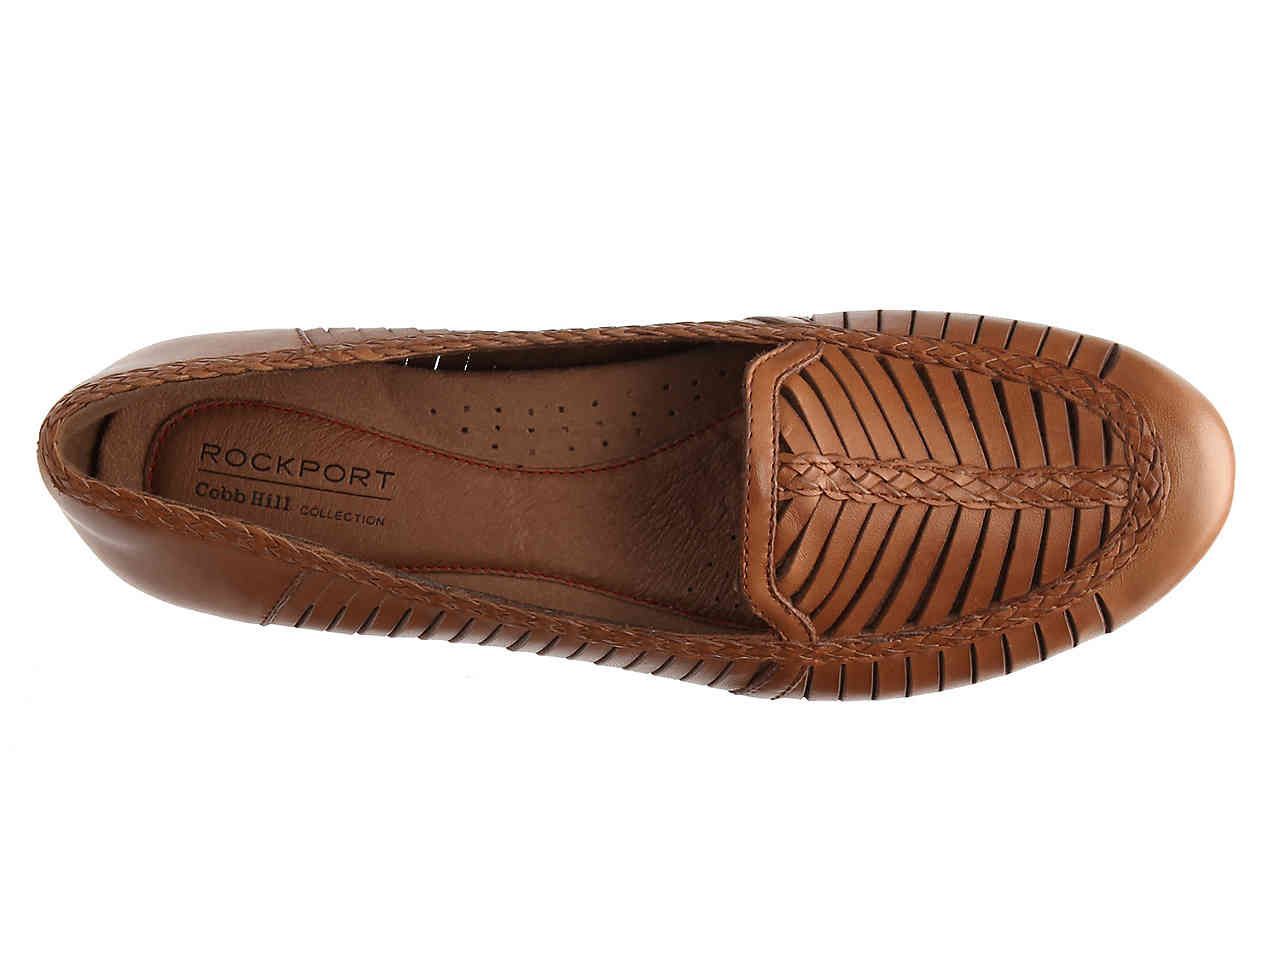 Rockport Cobb Hill Galway Loafer